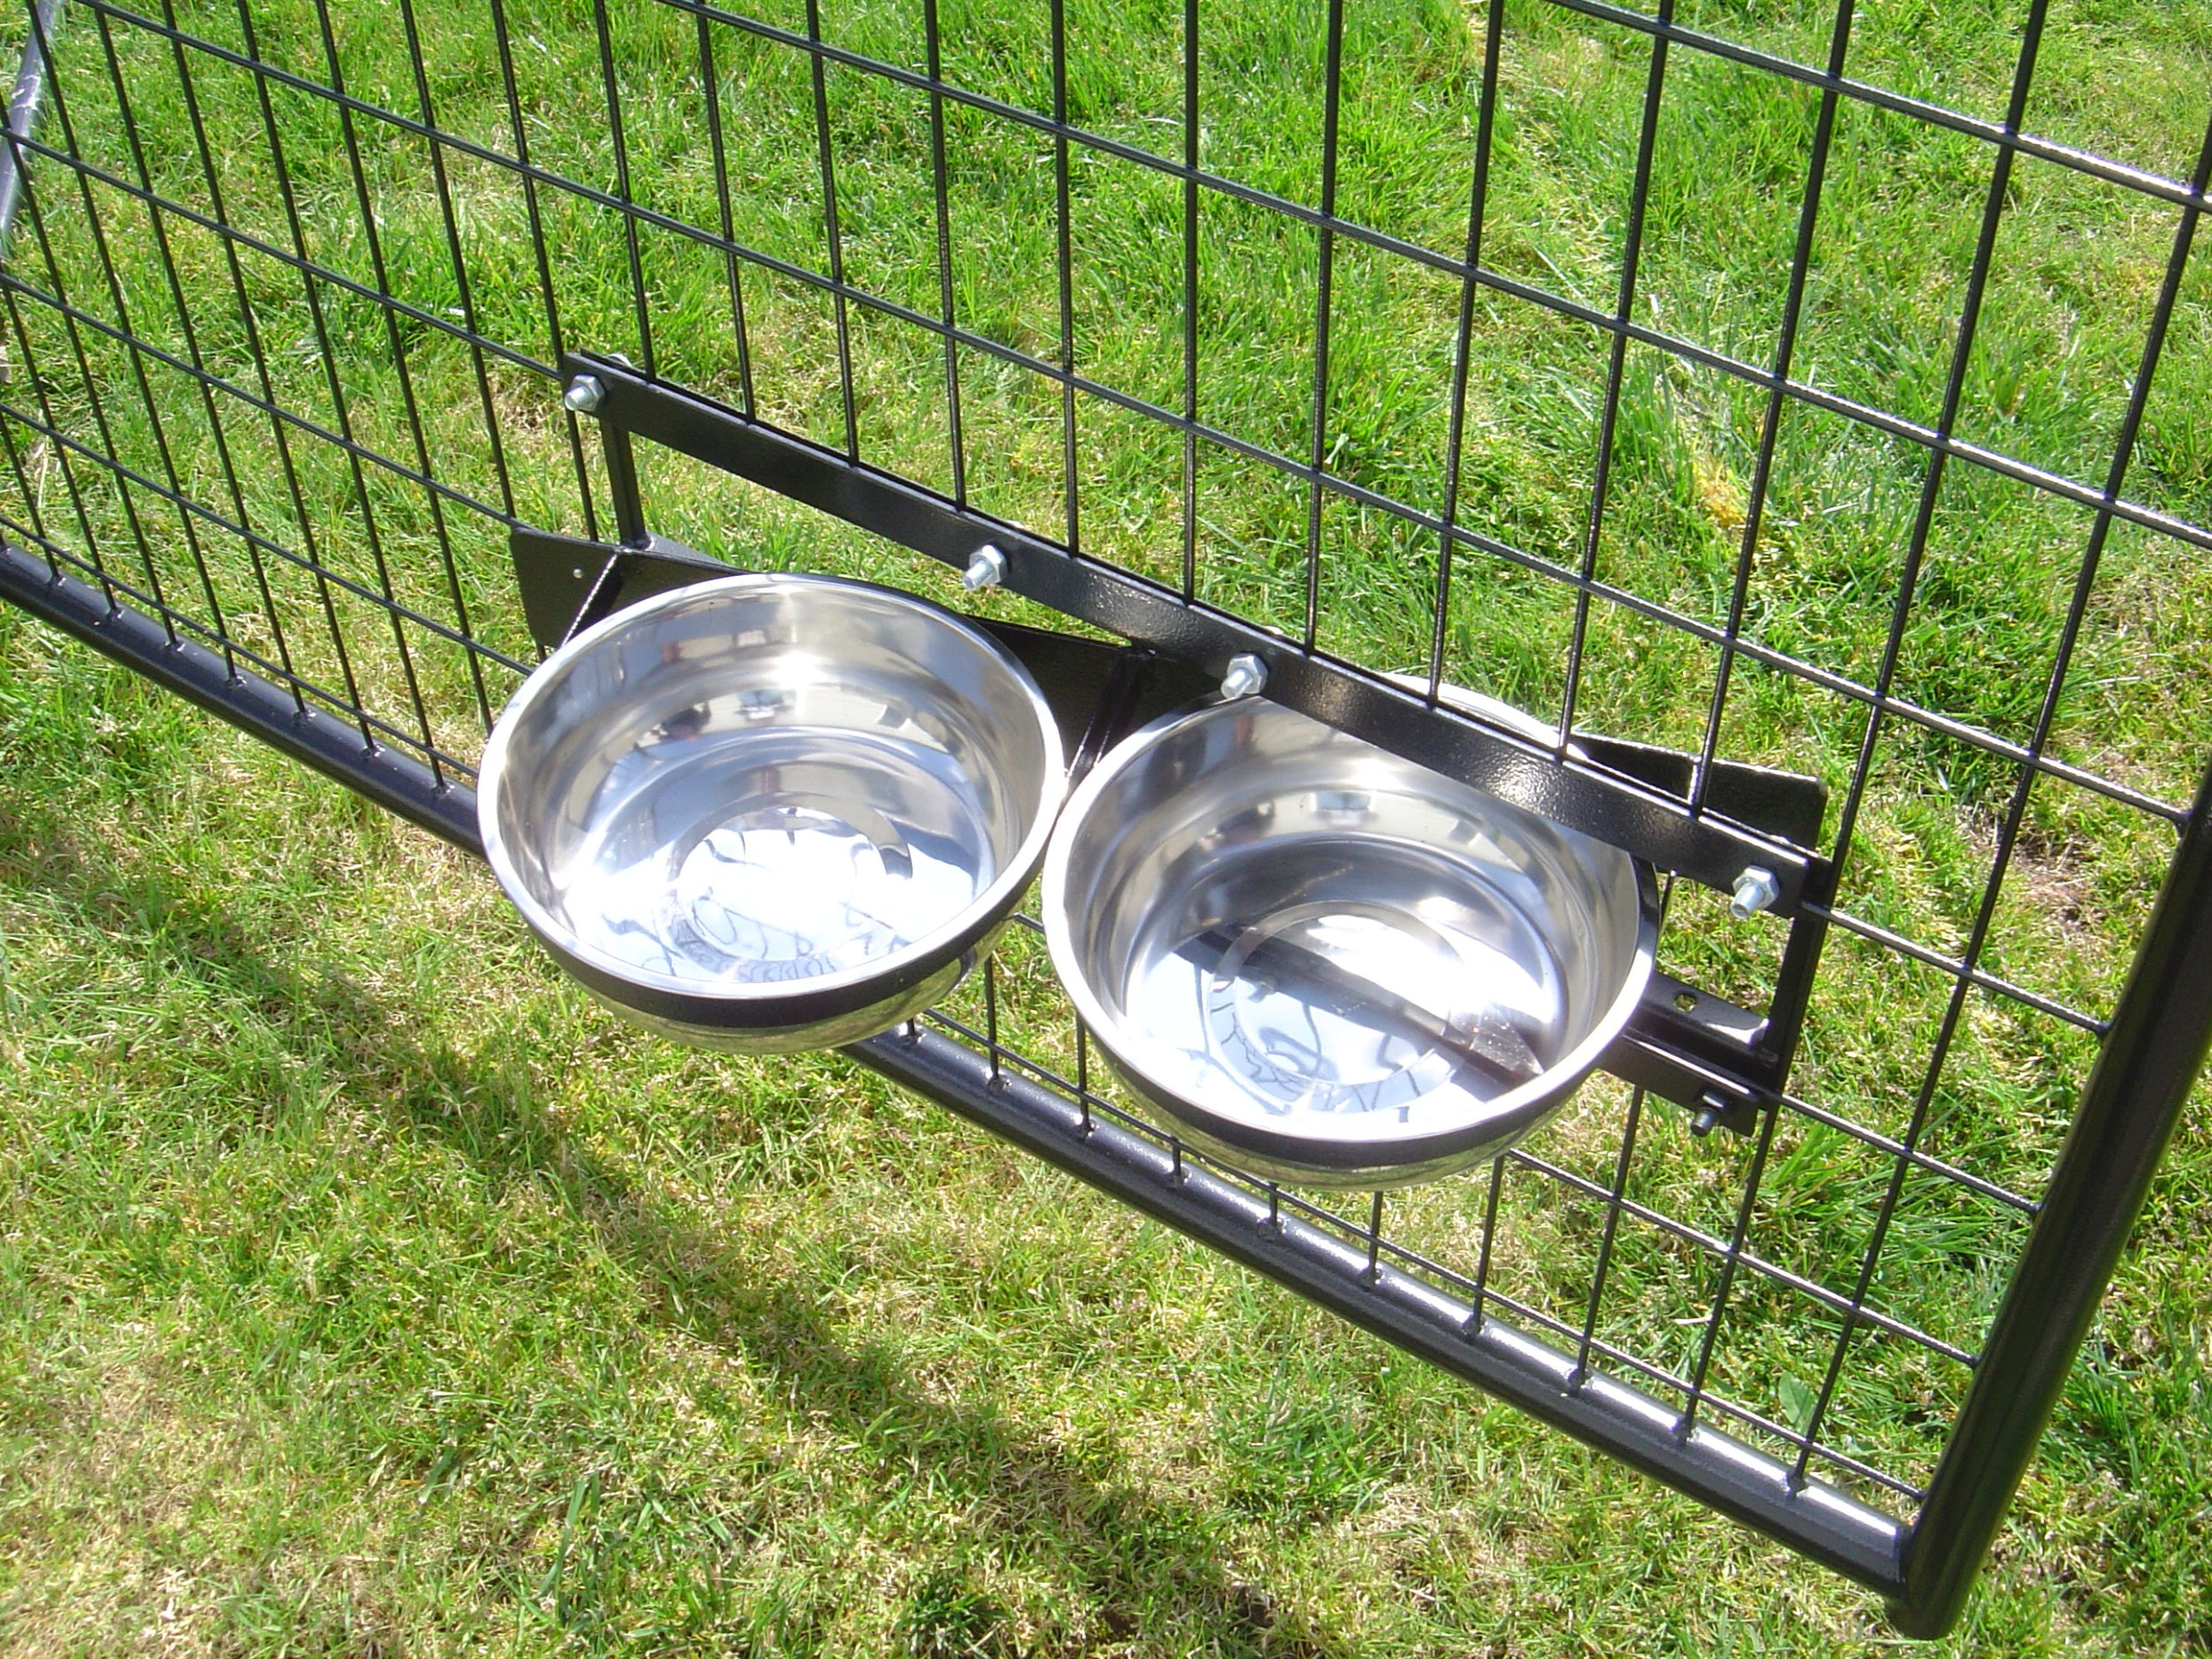 Lucky Dog Stainless Steel Double Rotating Food & Water Pet Bowls (21in. x 8in. X 5in.) by Lucky Dog